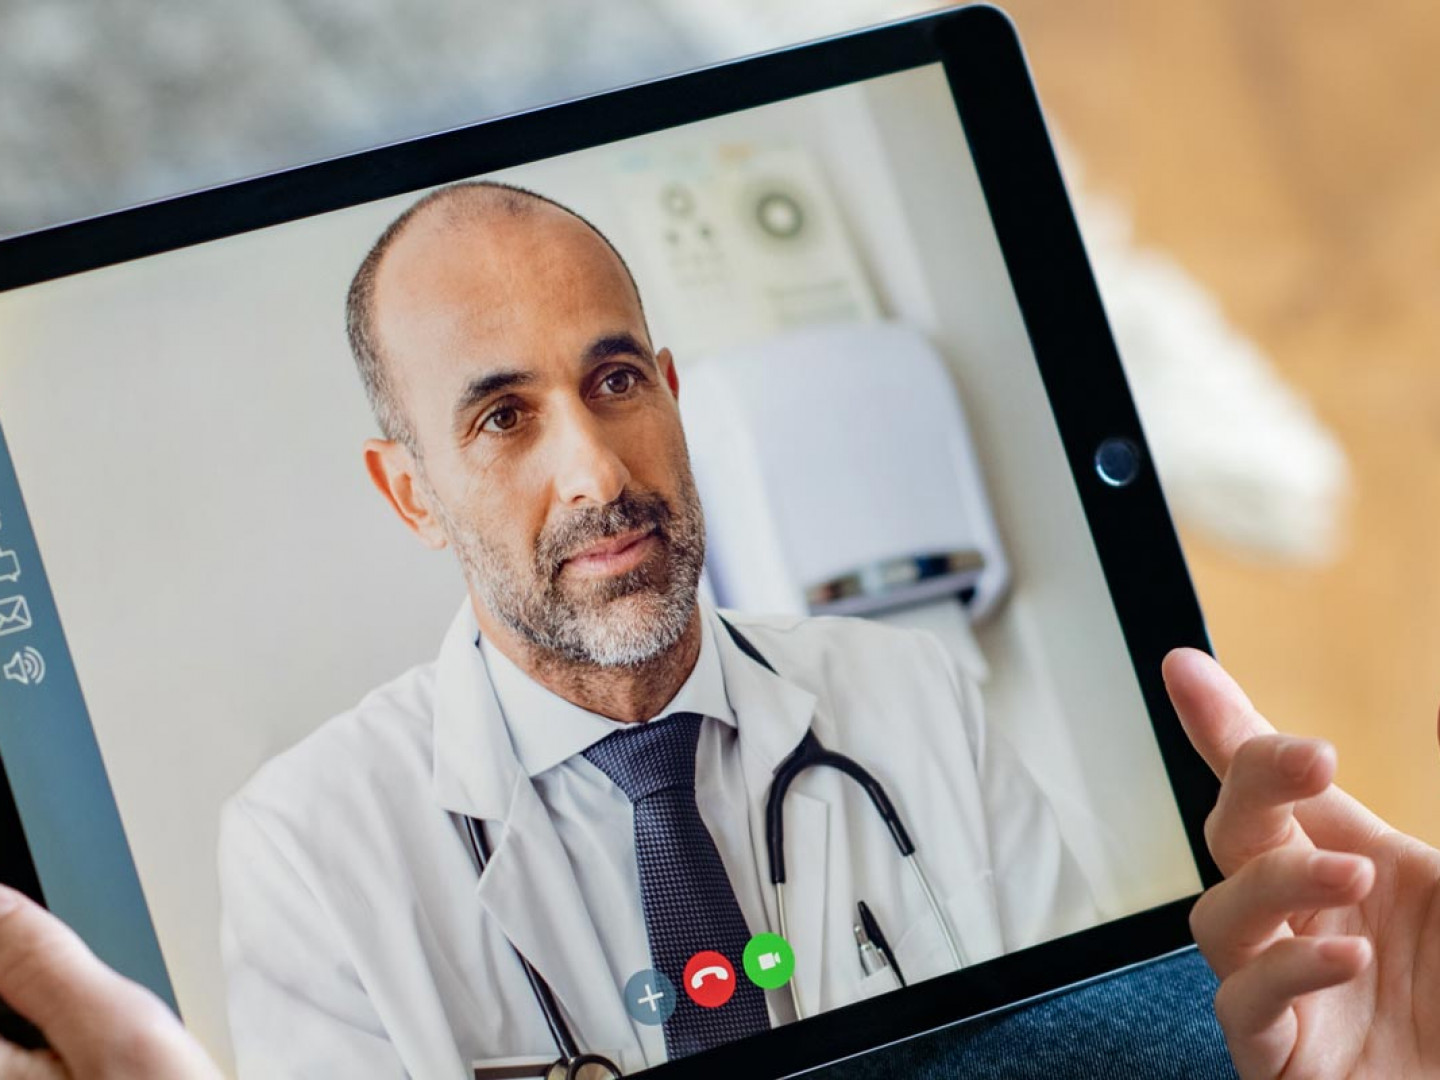 Now Offering Telehealth Options